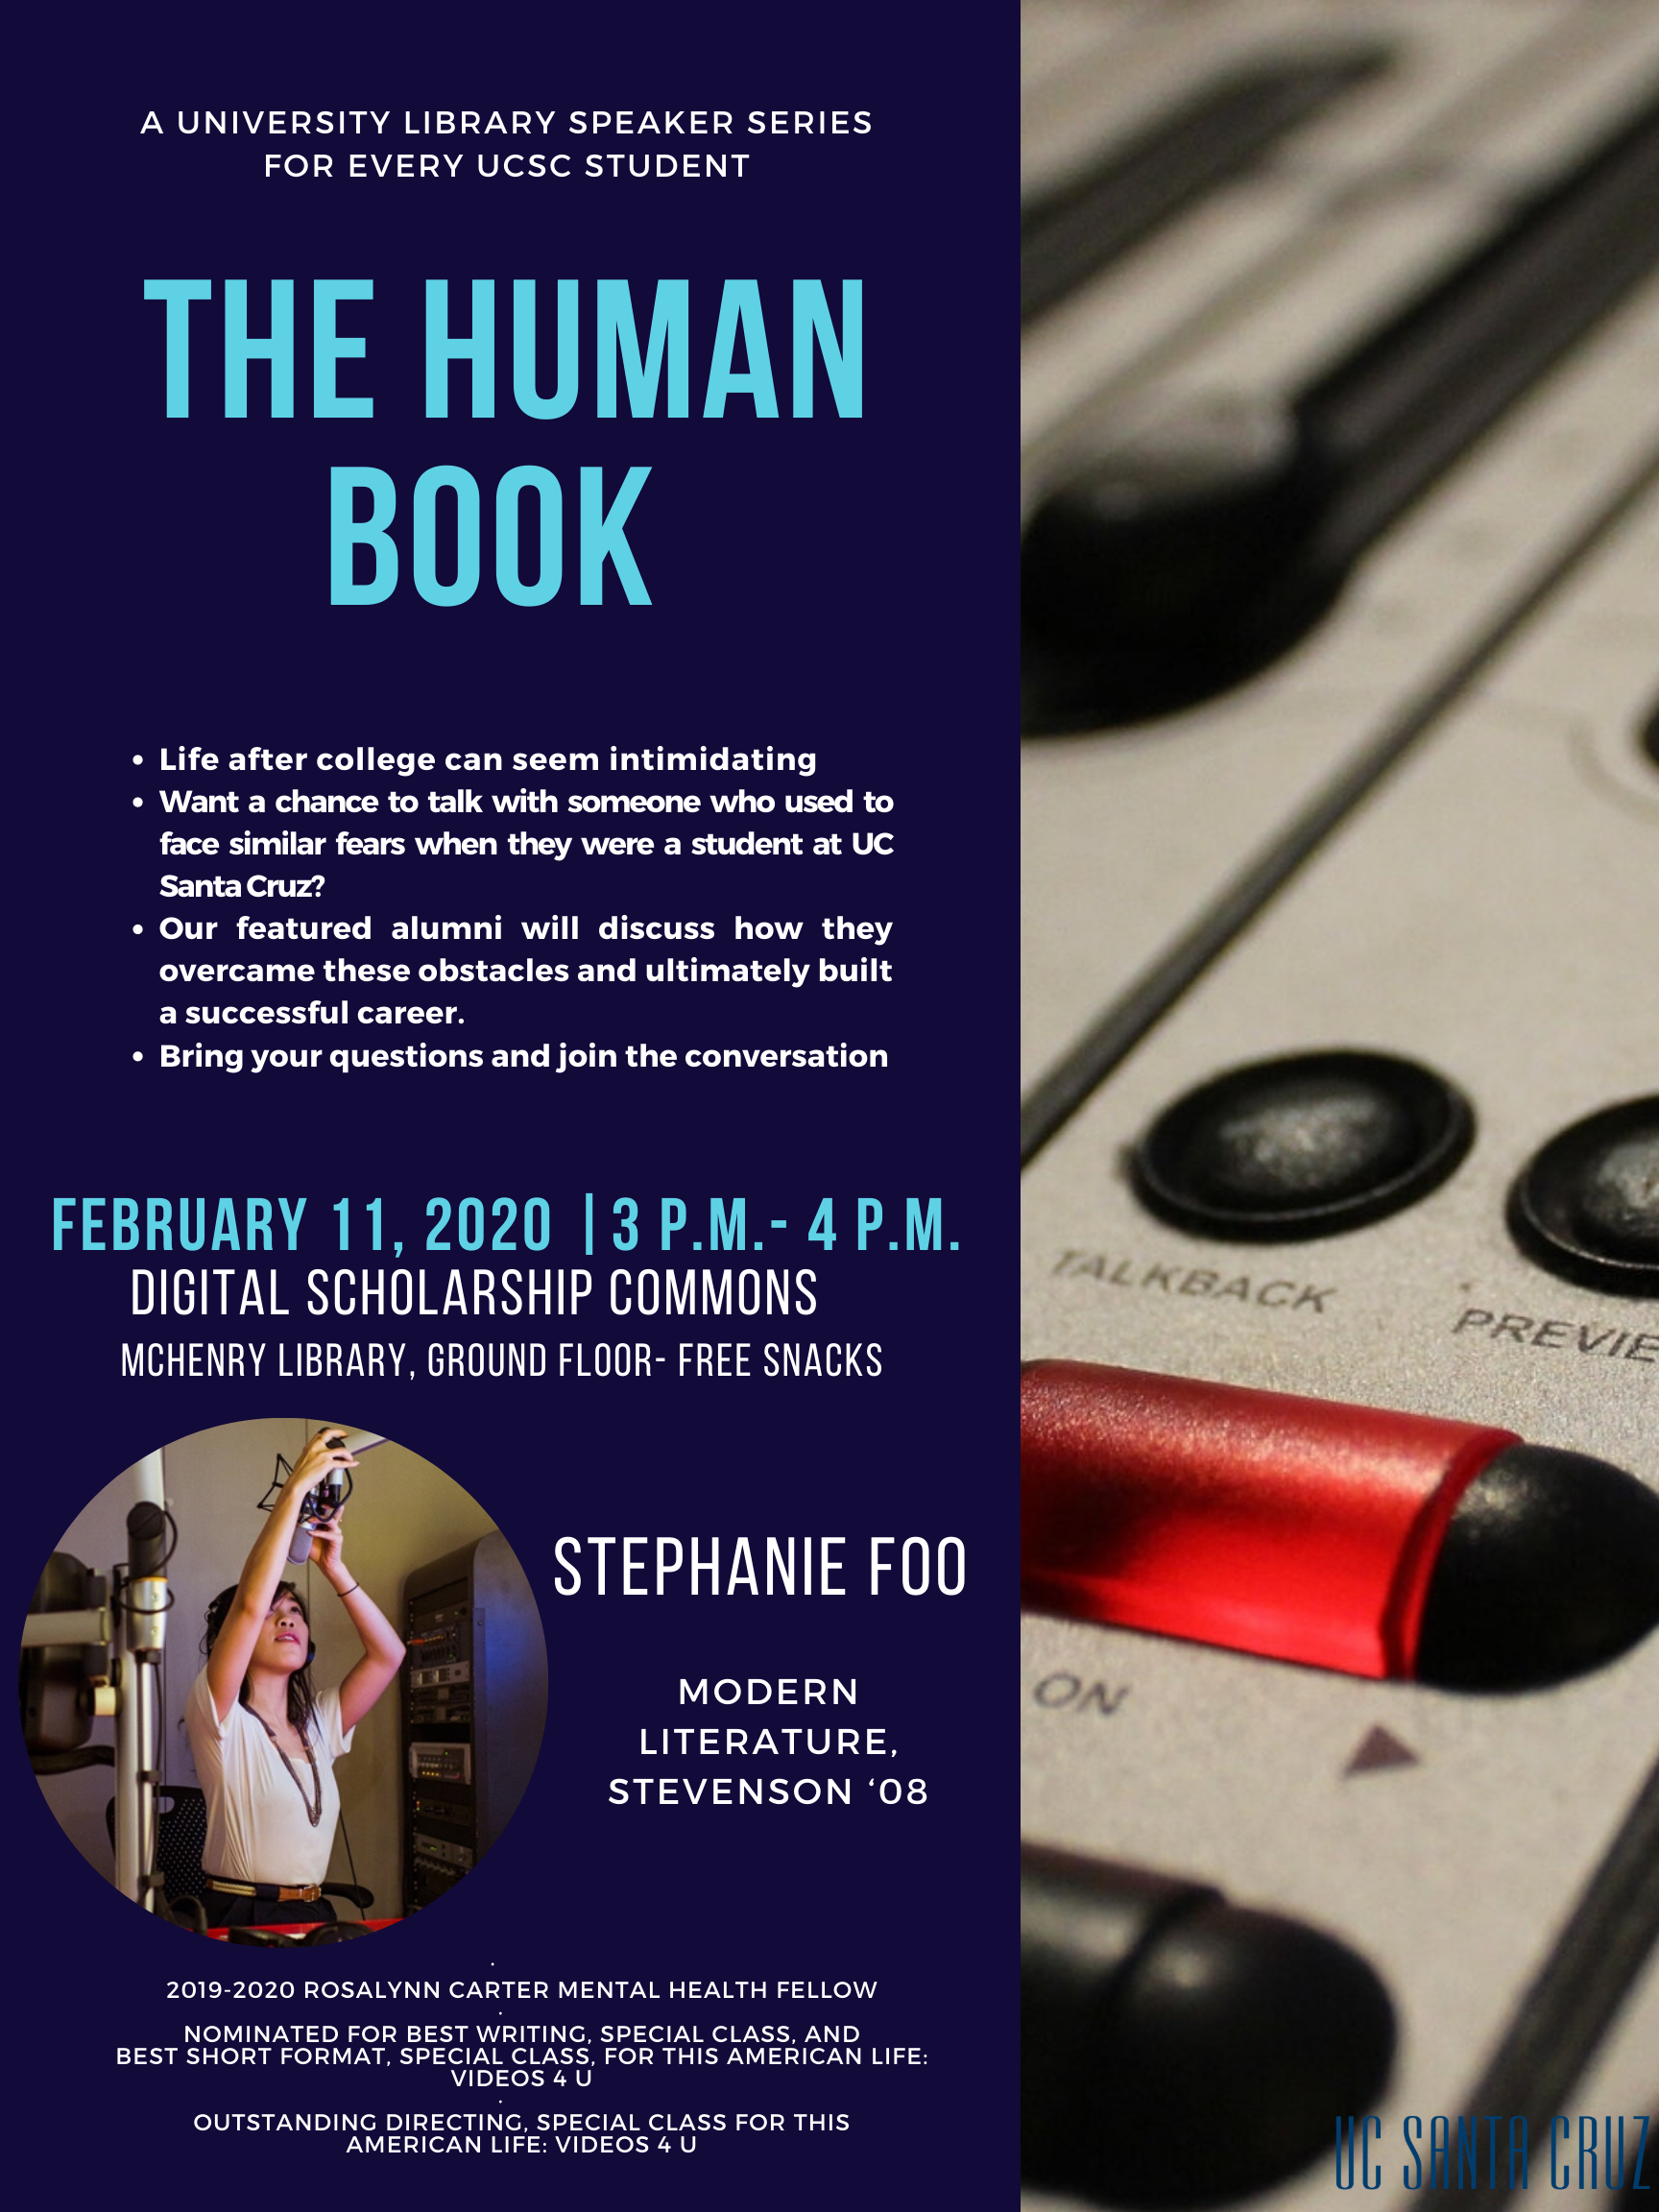 The Human Book with Stephanie Foo